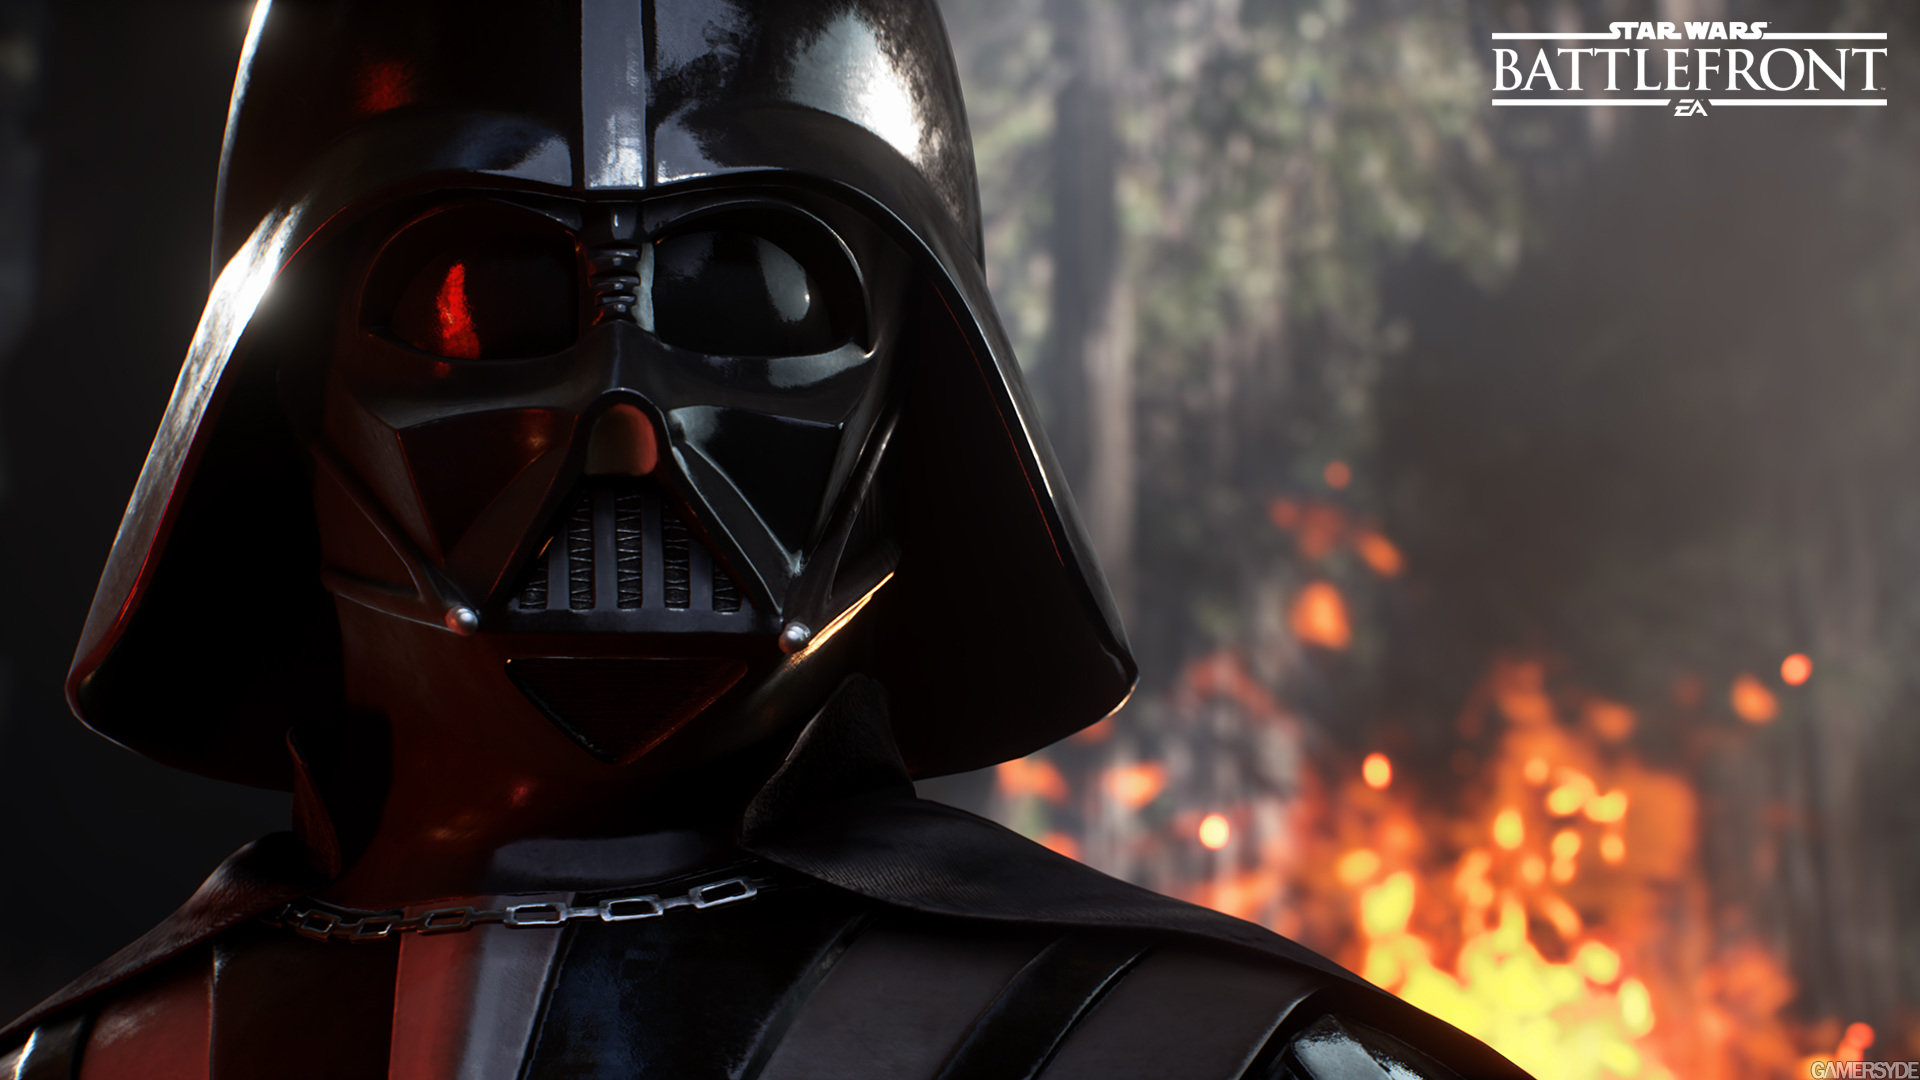 Awesome Star Wars Battlefront Free Wallpaper Id162435 For Full Hd